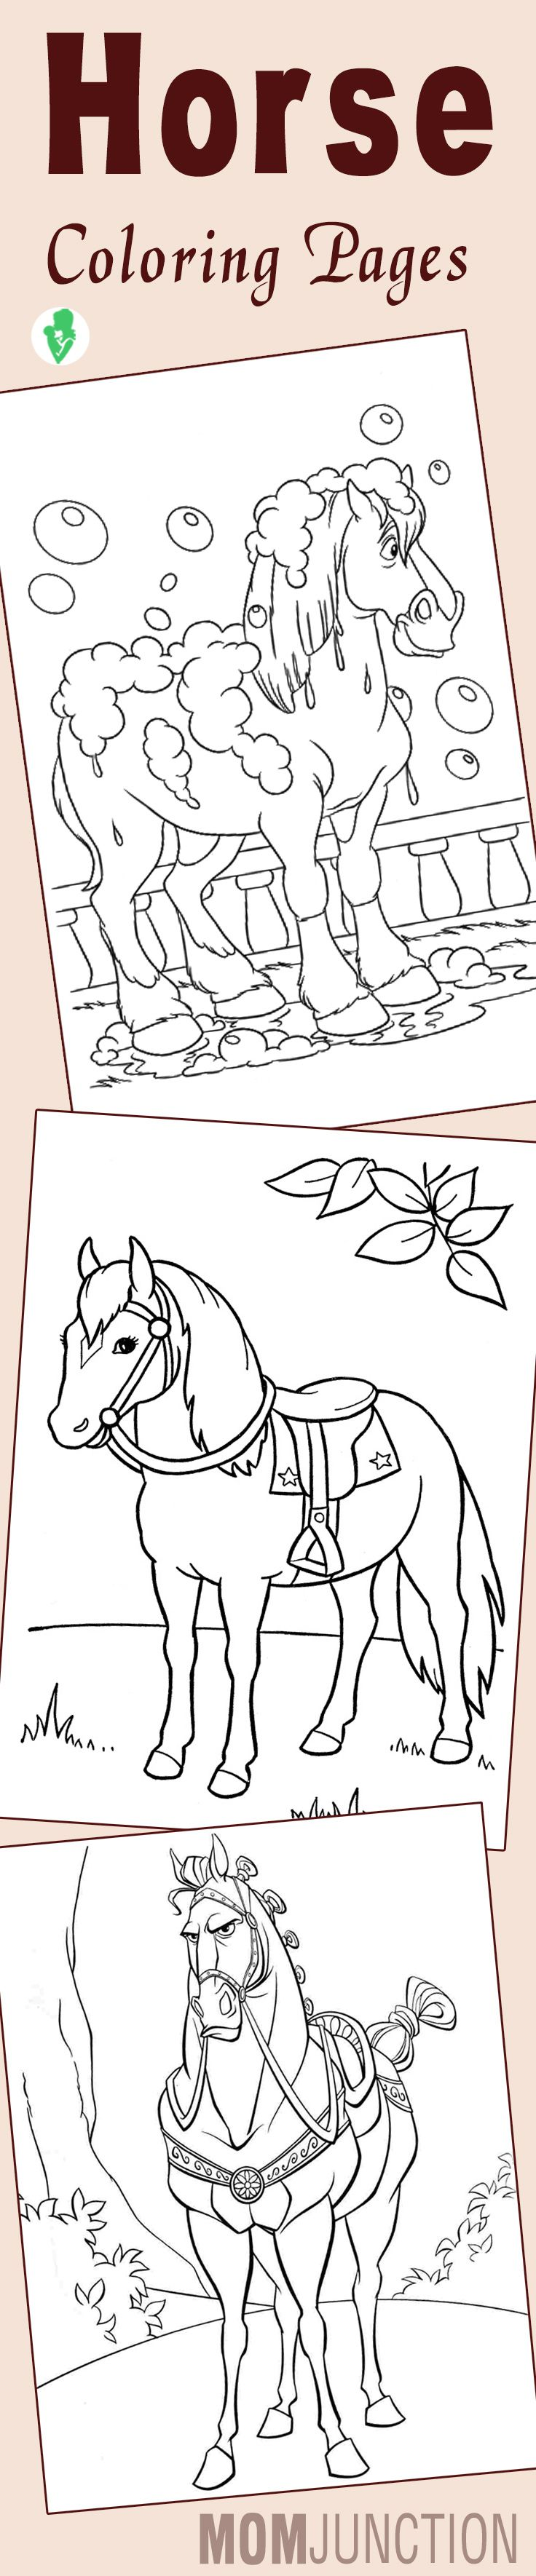 Free online horse coloring pages games - Top 25 Free Printable Horse Coloring Pages Online